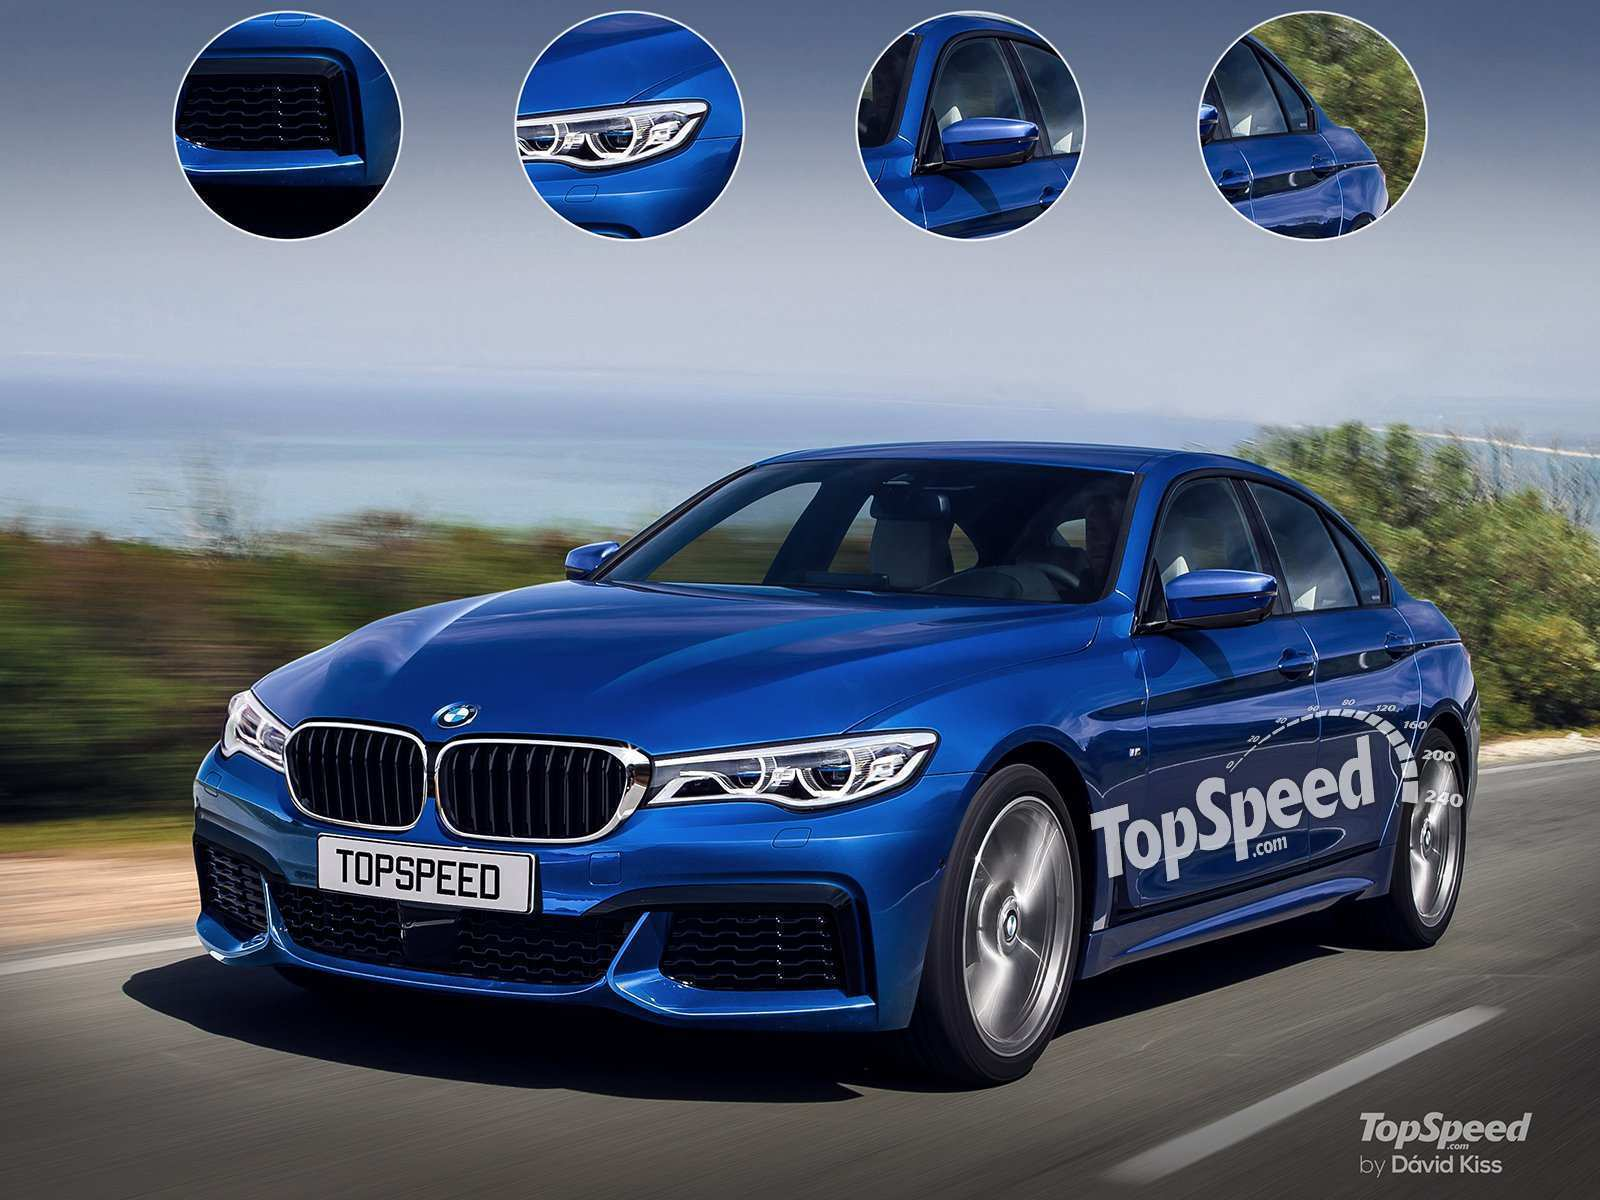 97 Great 2019 Bmw 340I Images by 2019 Bmw 340I